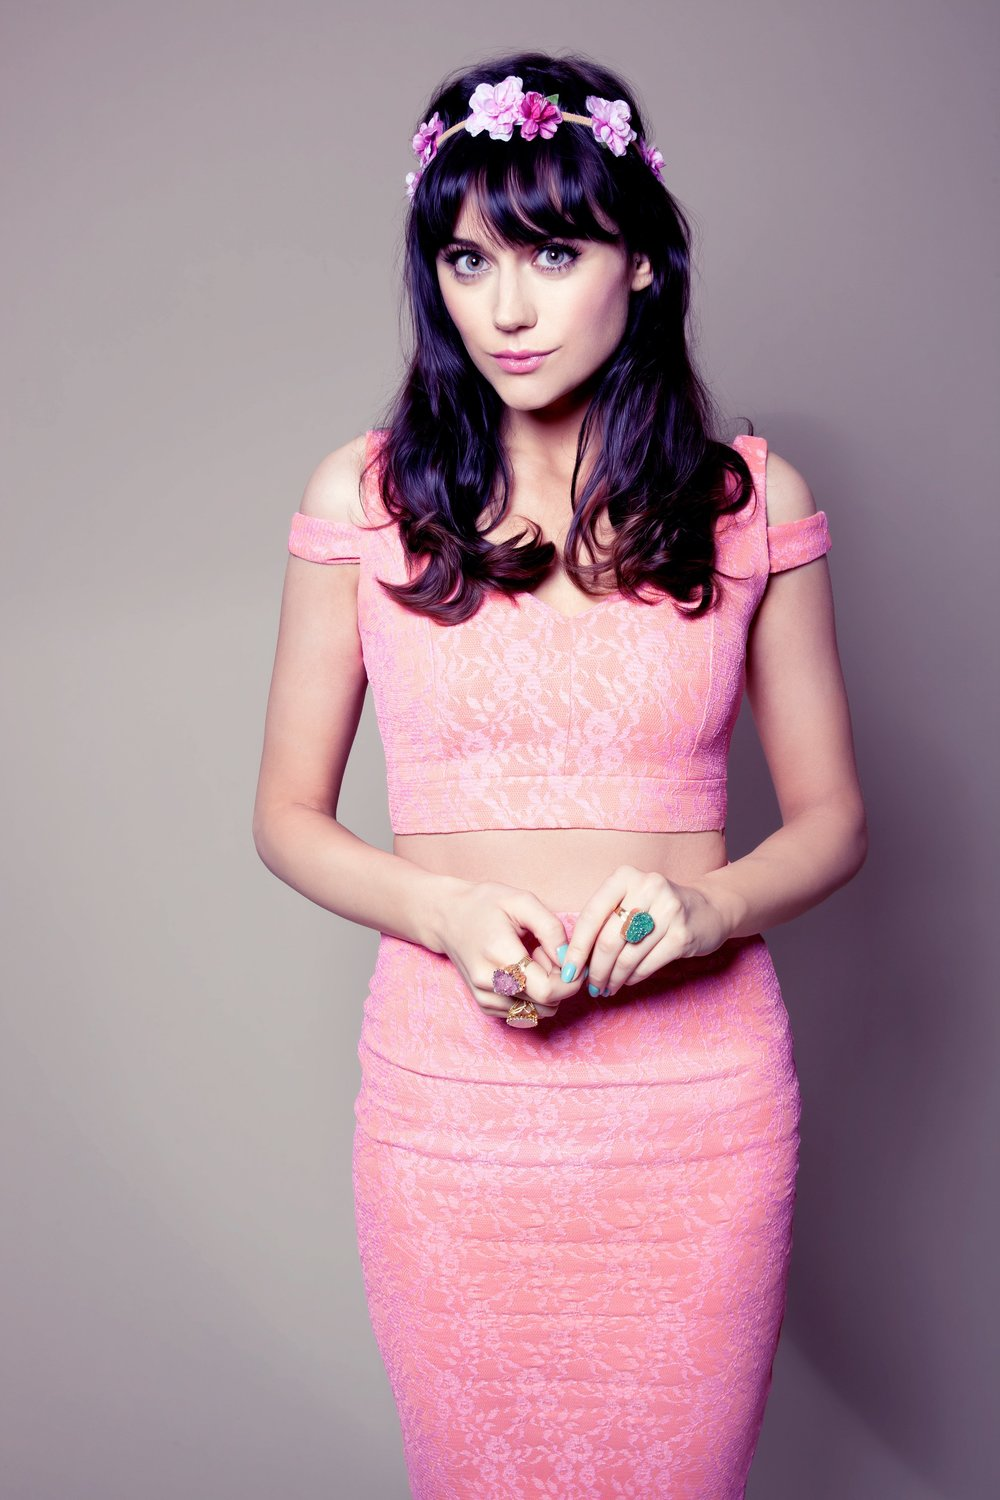 EMILY JANE WILLIAMS_MAKEUP_lilah-parsons-milk-management-pastel-ruth-rose-celebrity-mtv-6.jpg